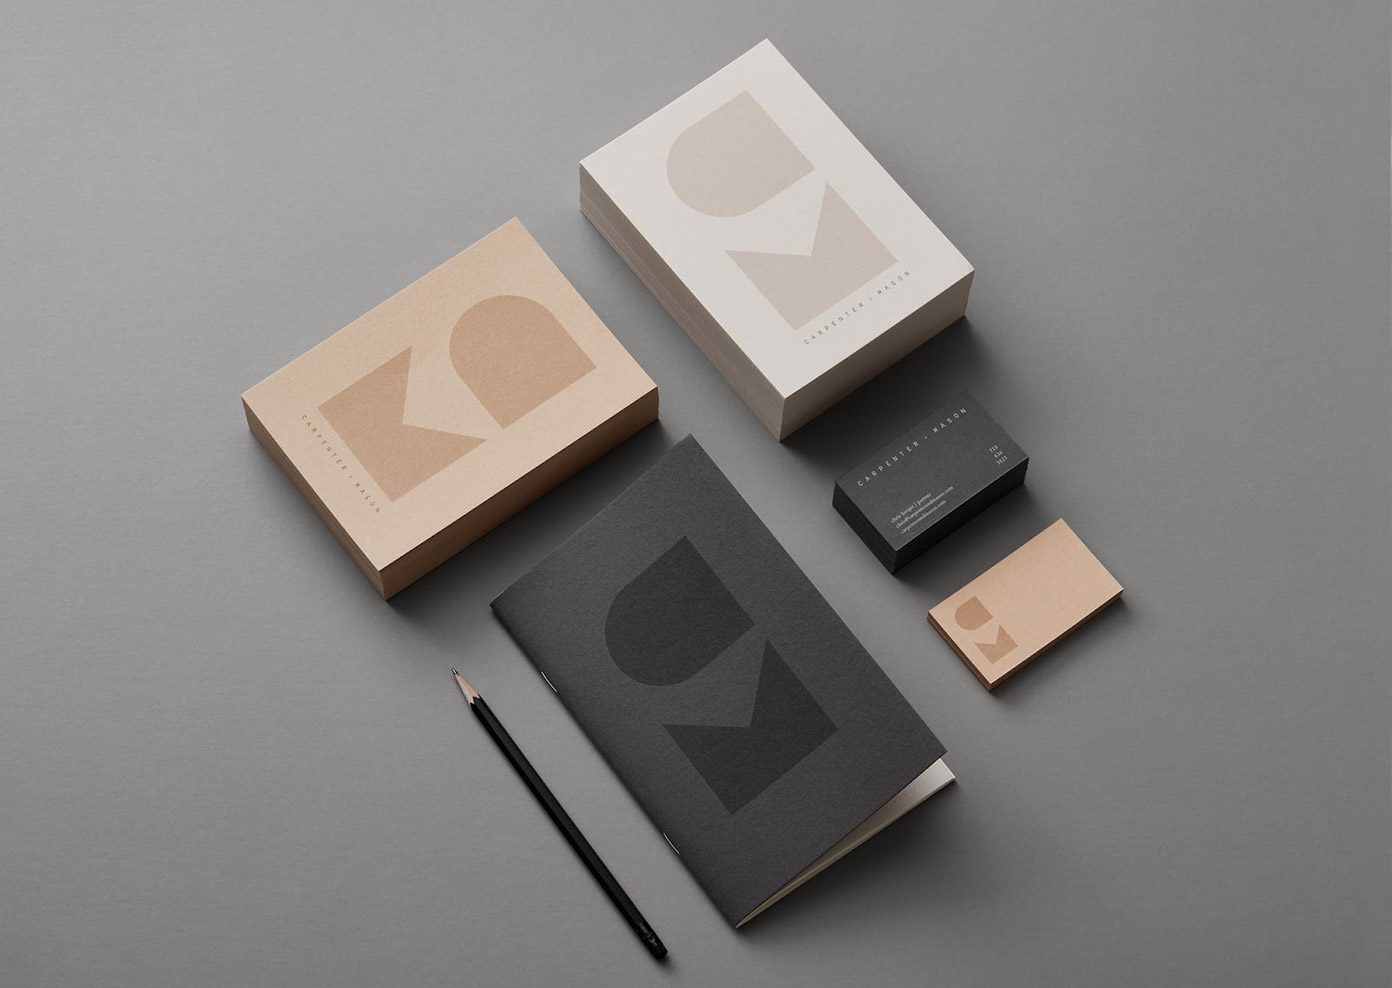 CARPENTER + MASON brand identity by LMNOP Creative.